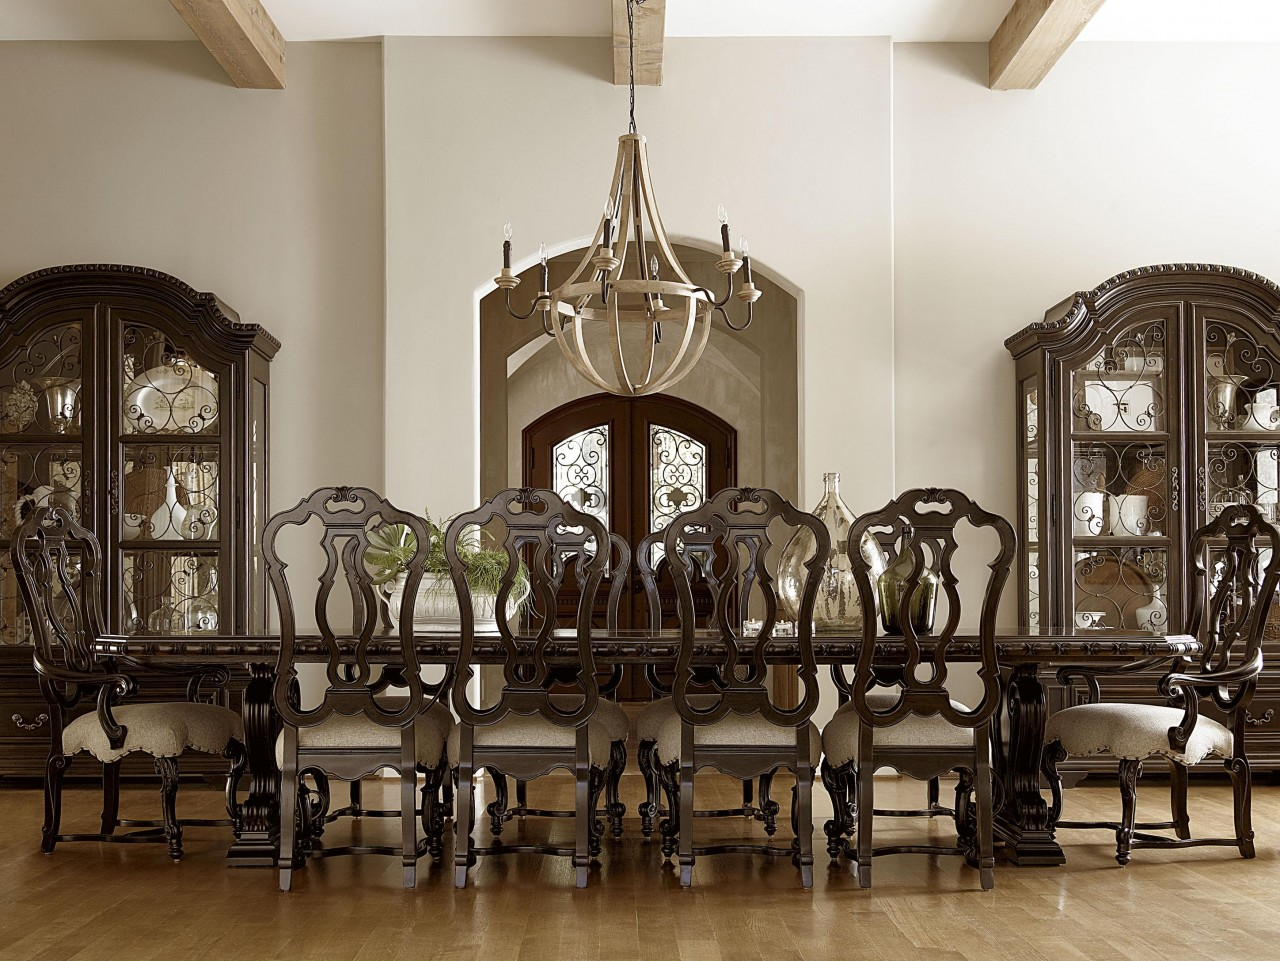 Dining Room Chairs 5 Decoration Idea Enhancedhomes Org